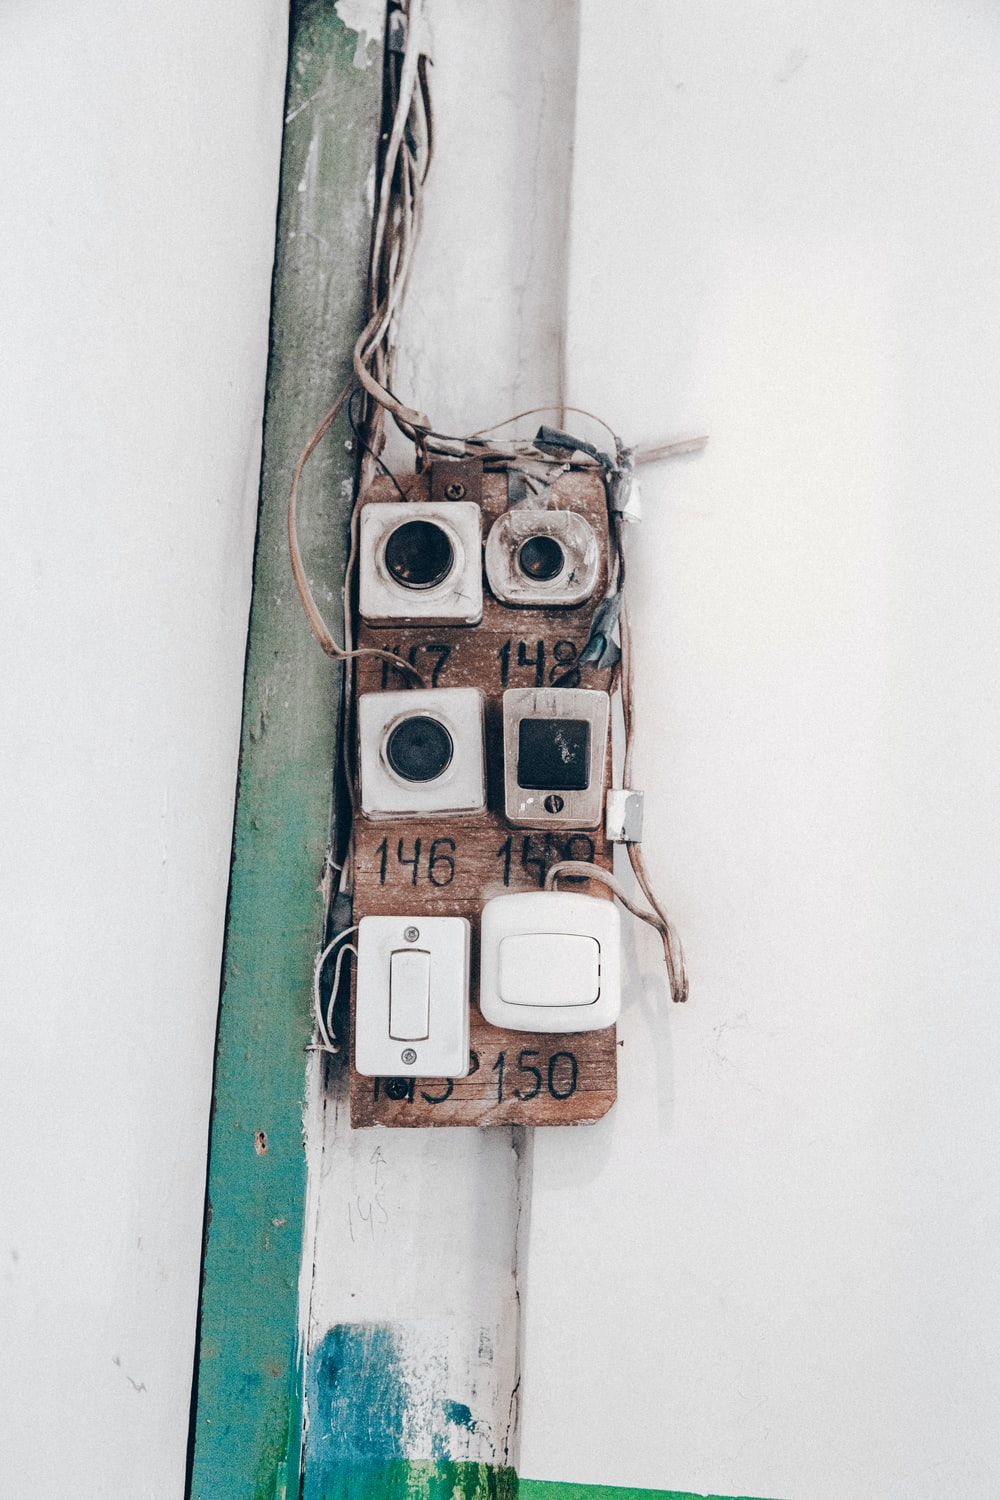 white wall switch close-up photography